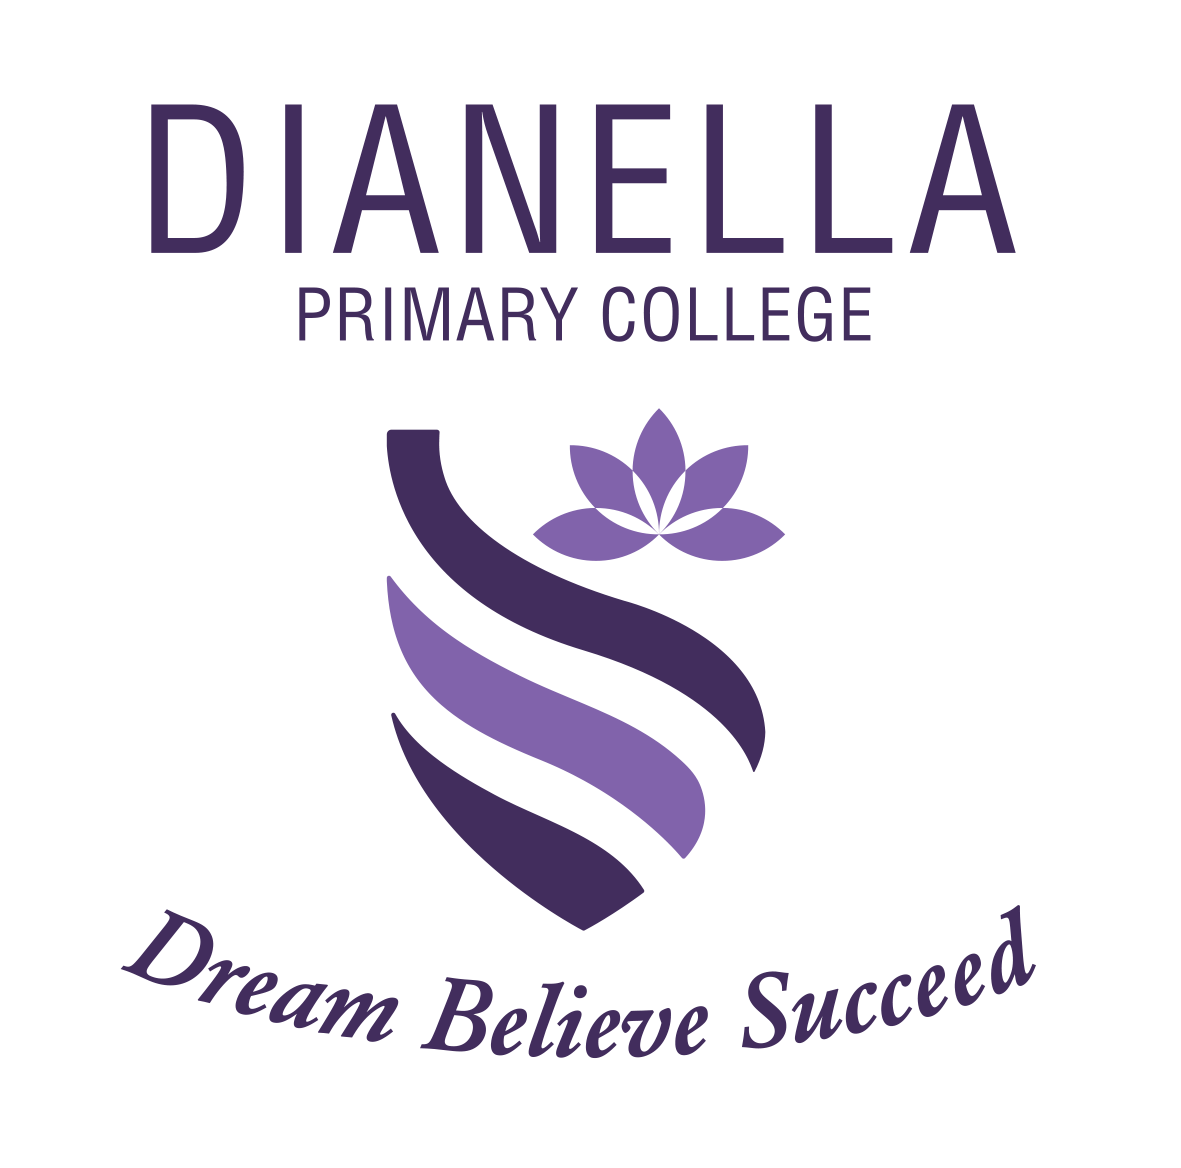 Dianella Primary College